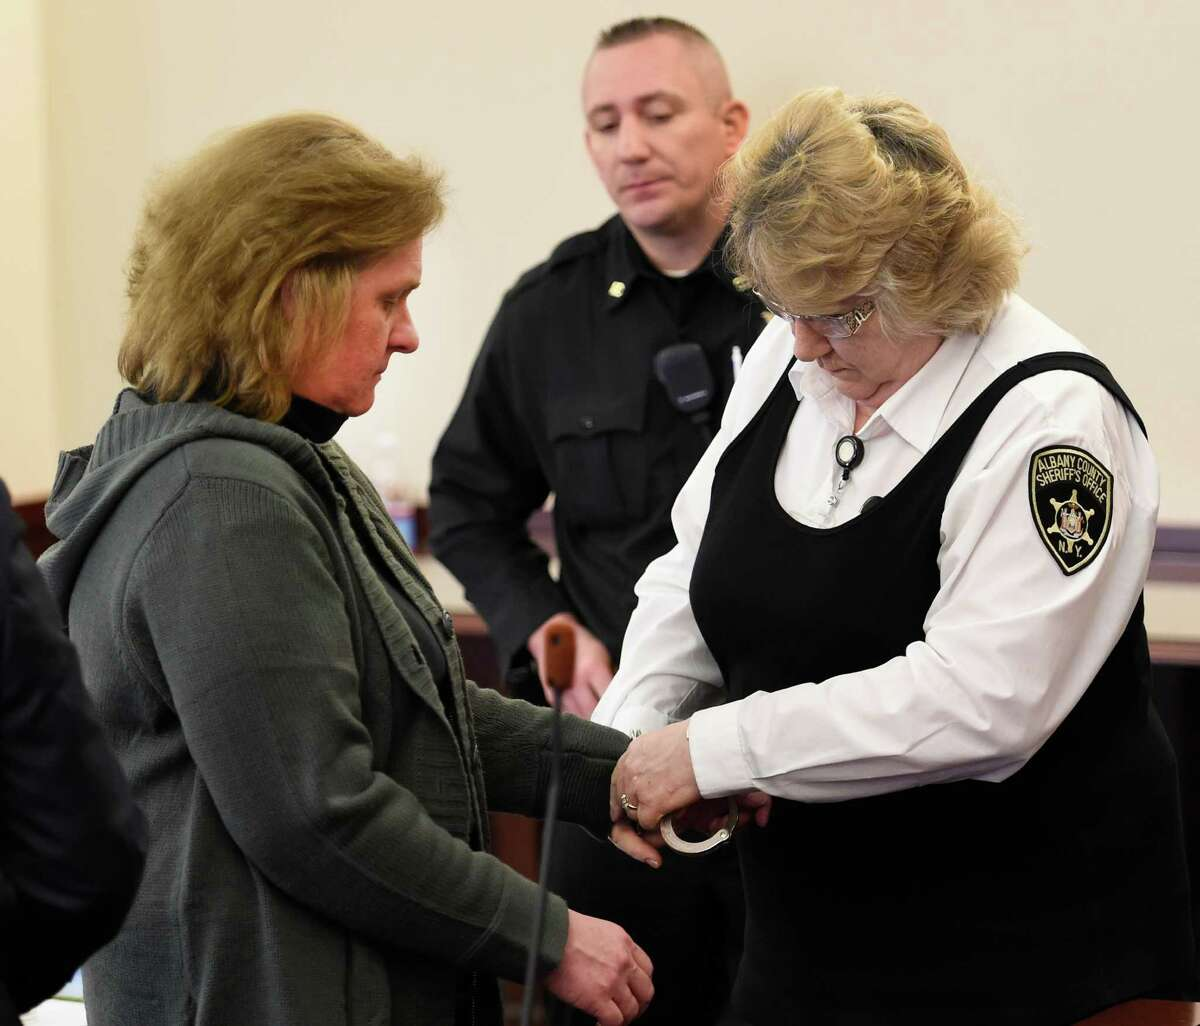 Christina Yerry, left, is handcuffed after receiving the verdict of 2 to 6 years in prison from Judge Roger McDonough at the Judicial Center Friday morning, March 13, 2015, in Albany, N.Y. She was sentenced to state prison Friday for stealing more than $200,000 from a 72-year-old neighbor in Watervliet. (Skip Dickstein/Times Union)